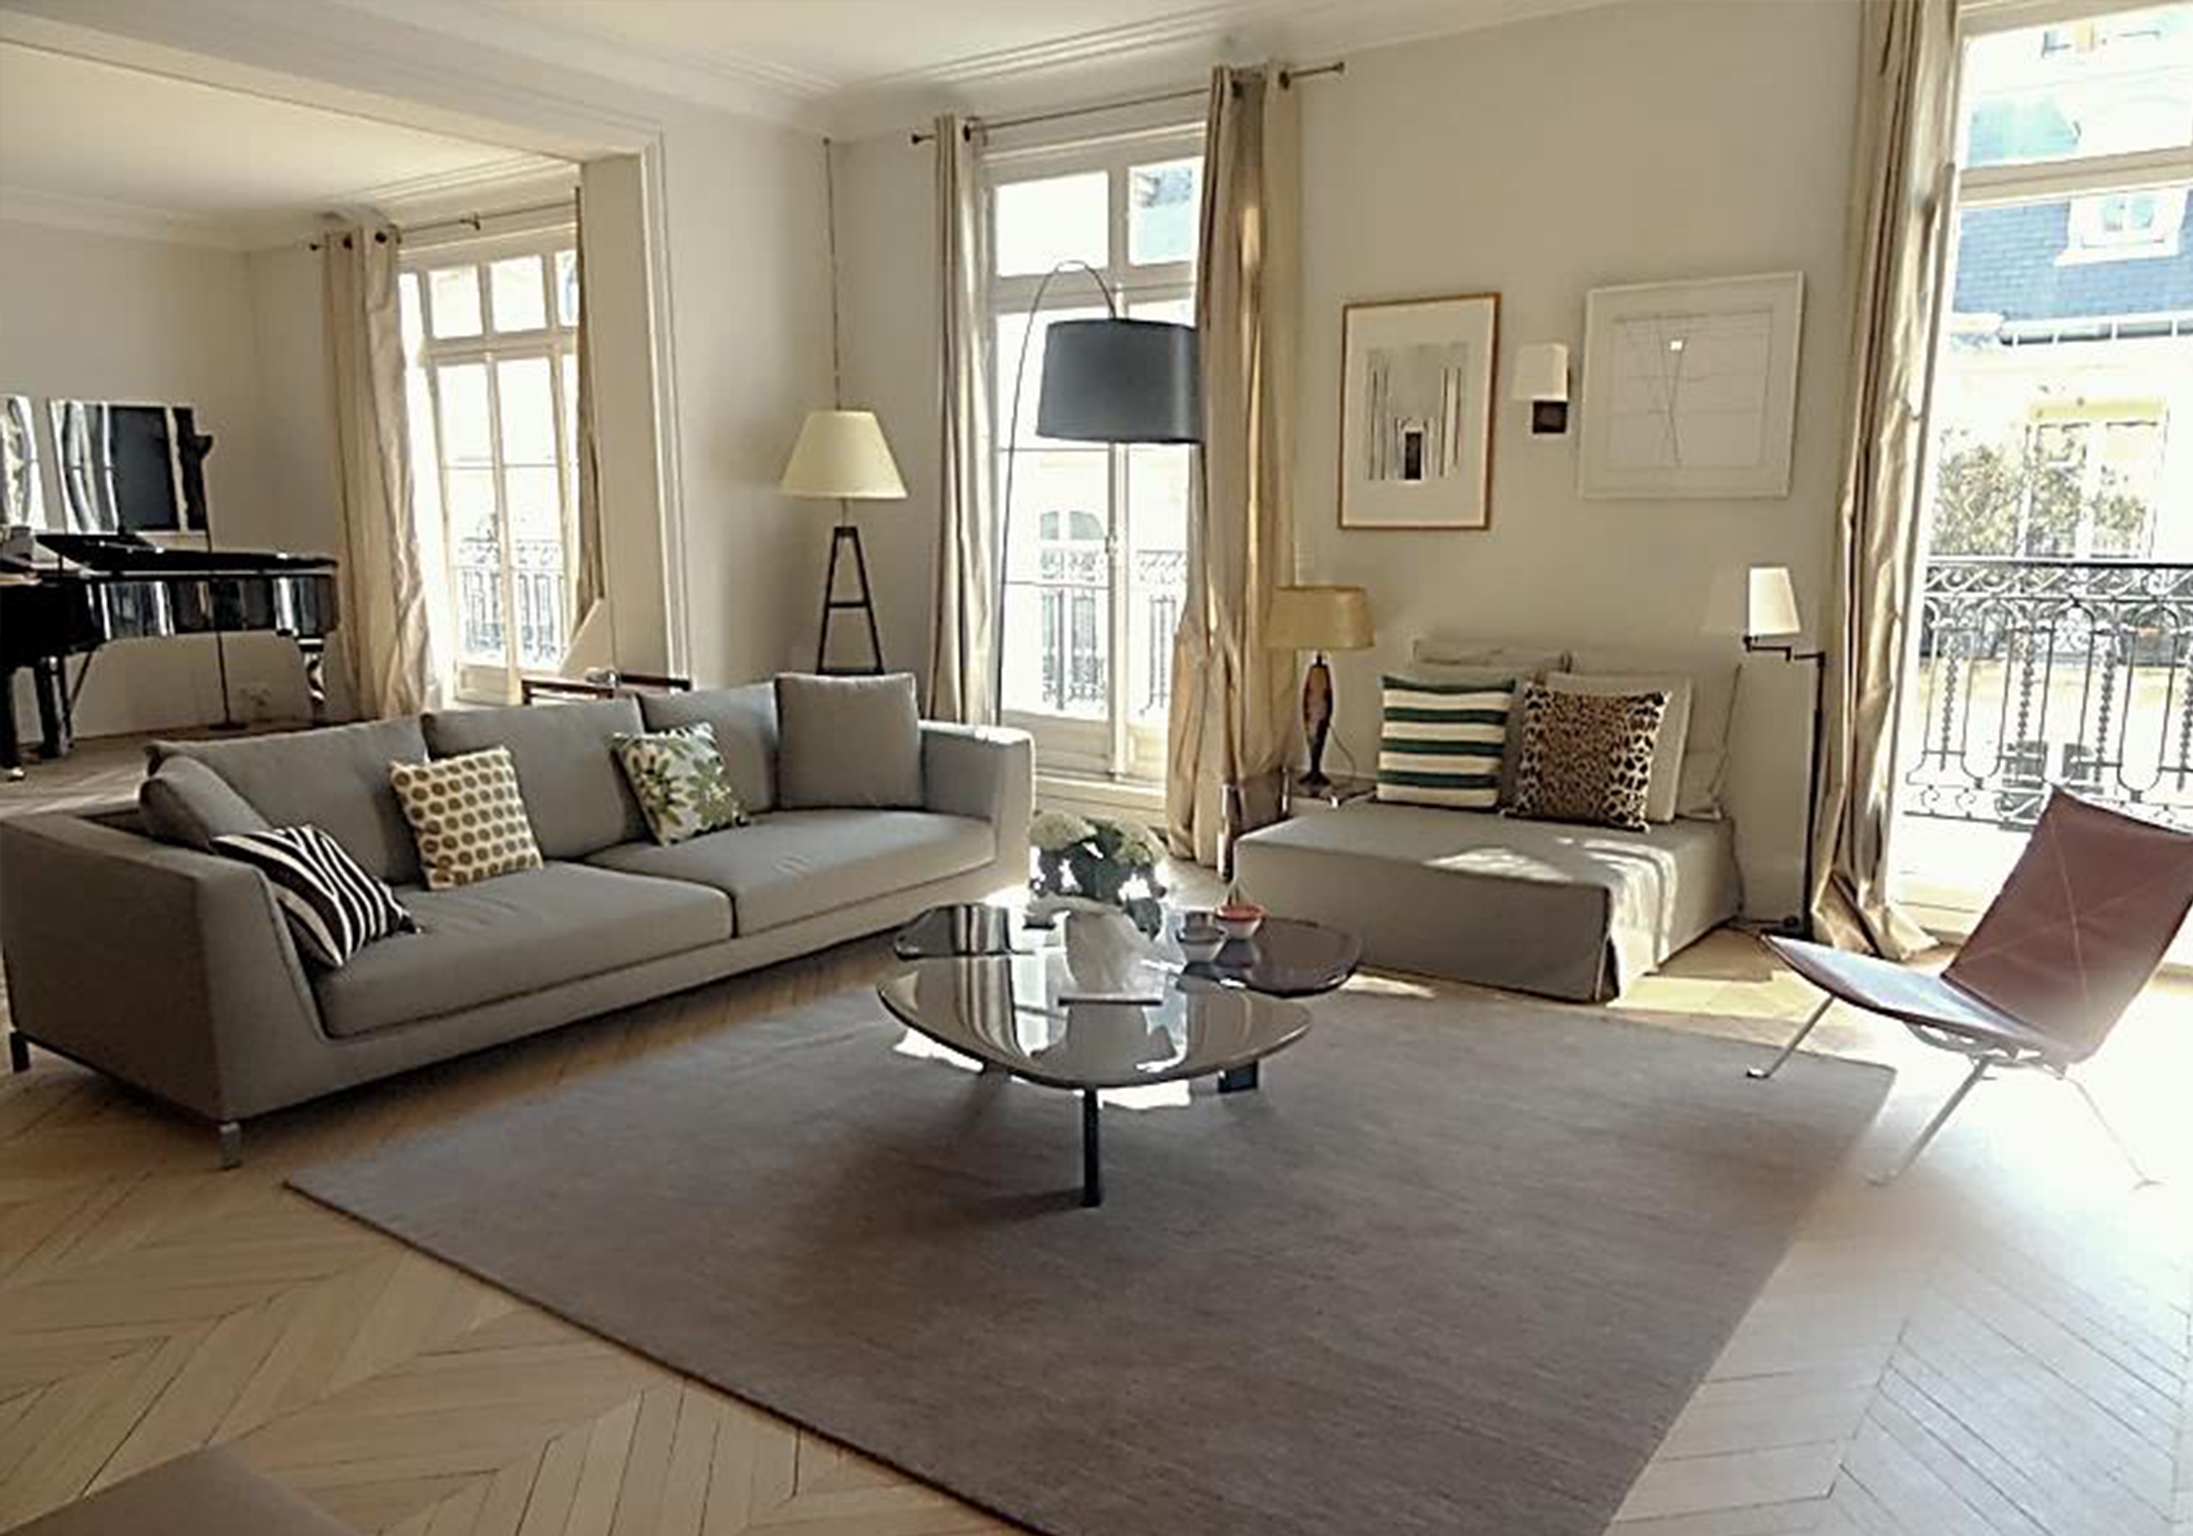 Interieur singulier appartement paris 16 for Style de salon moderne